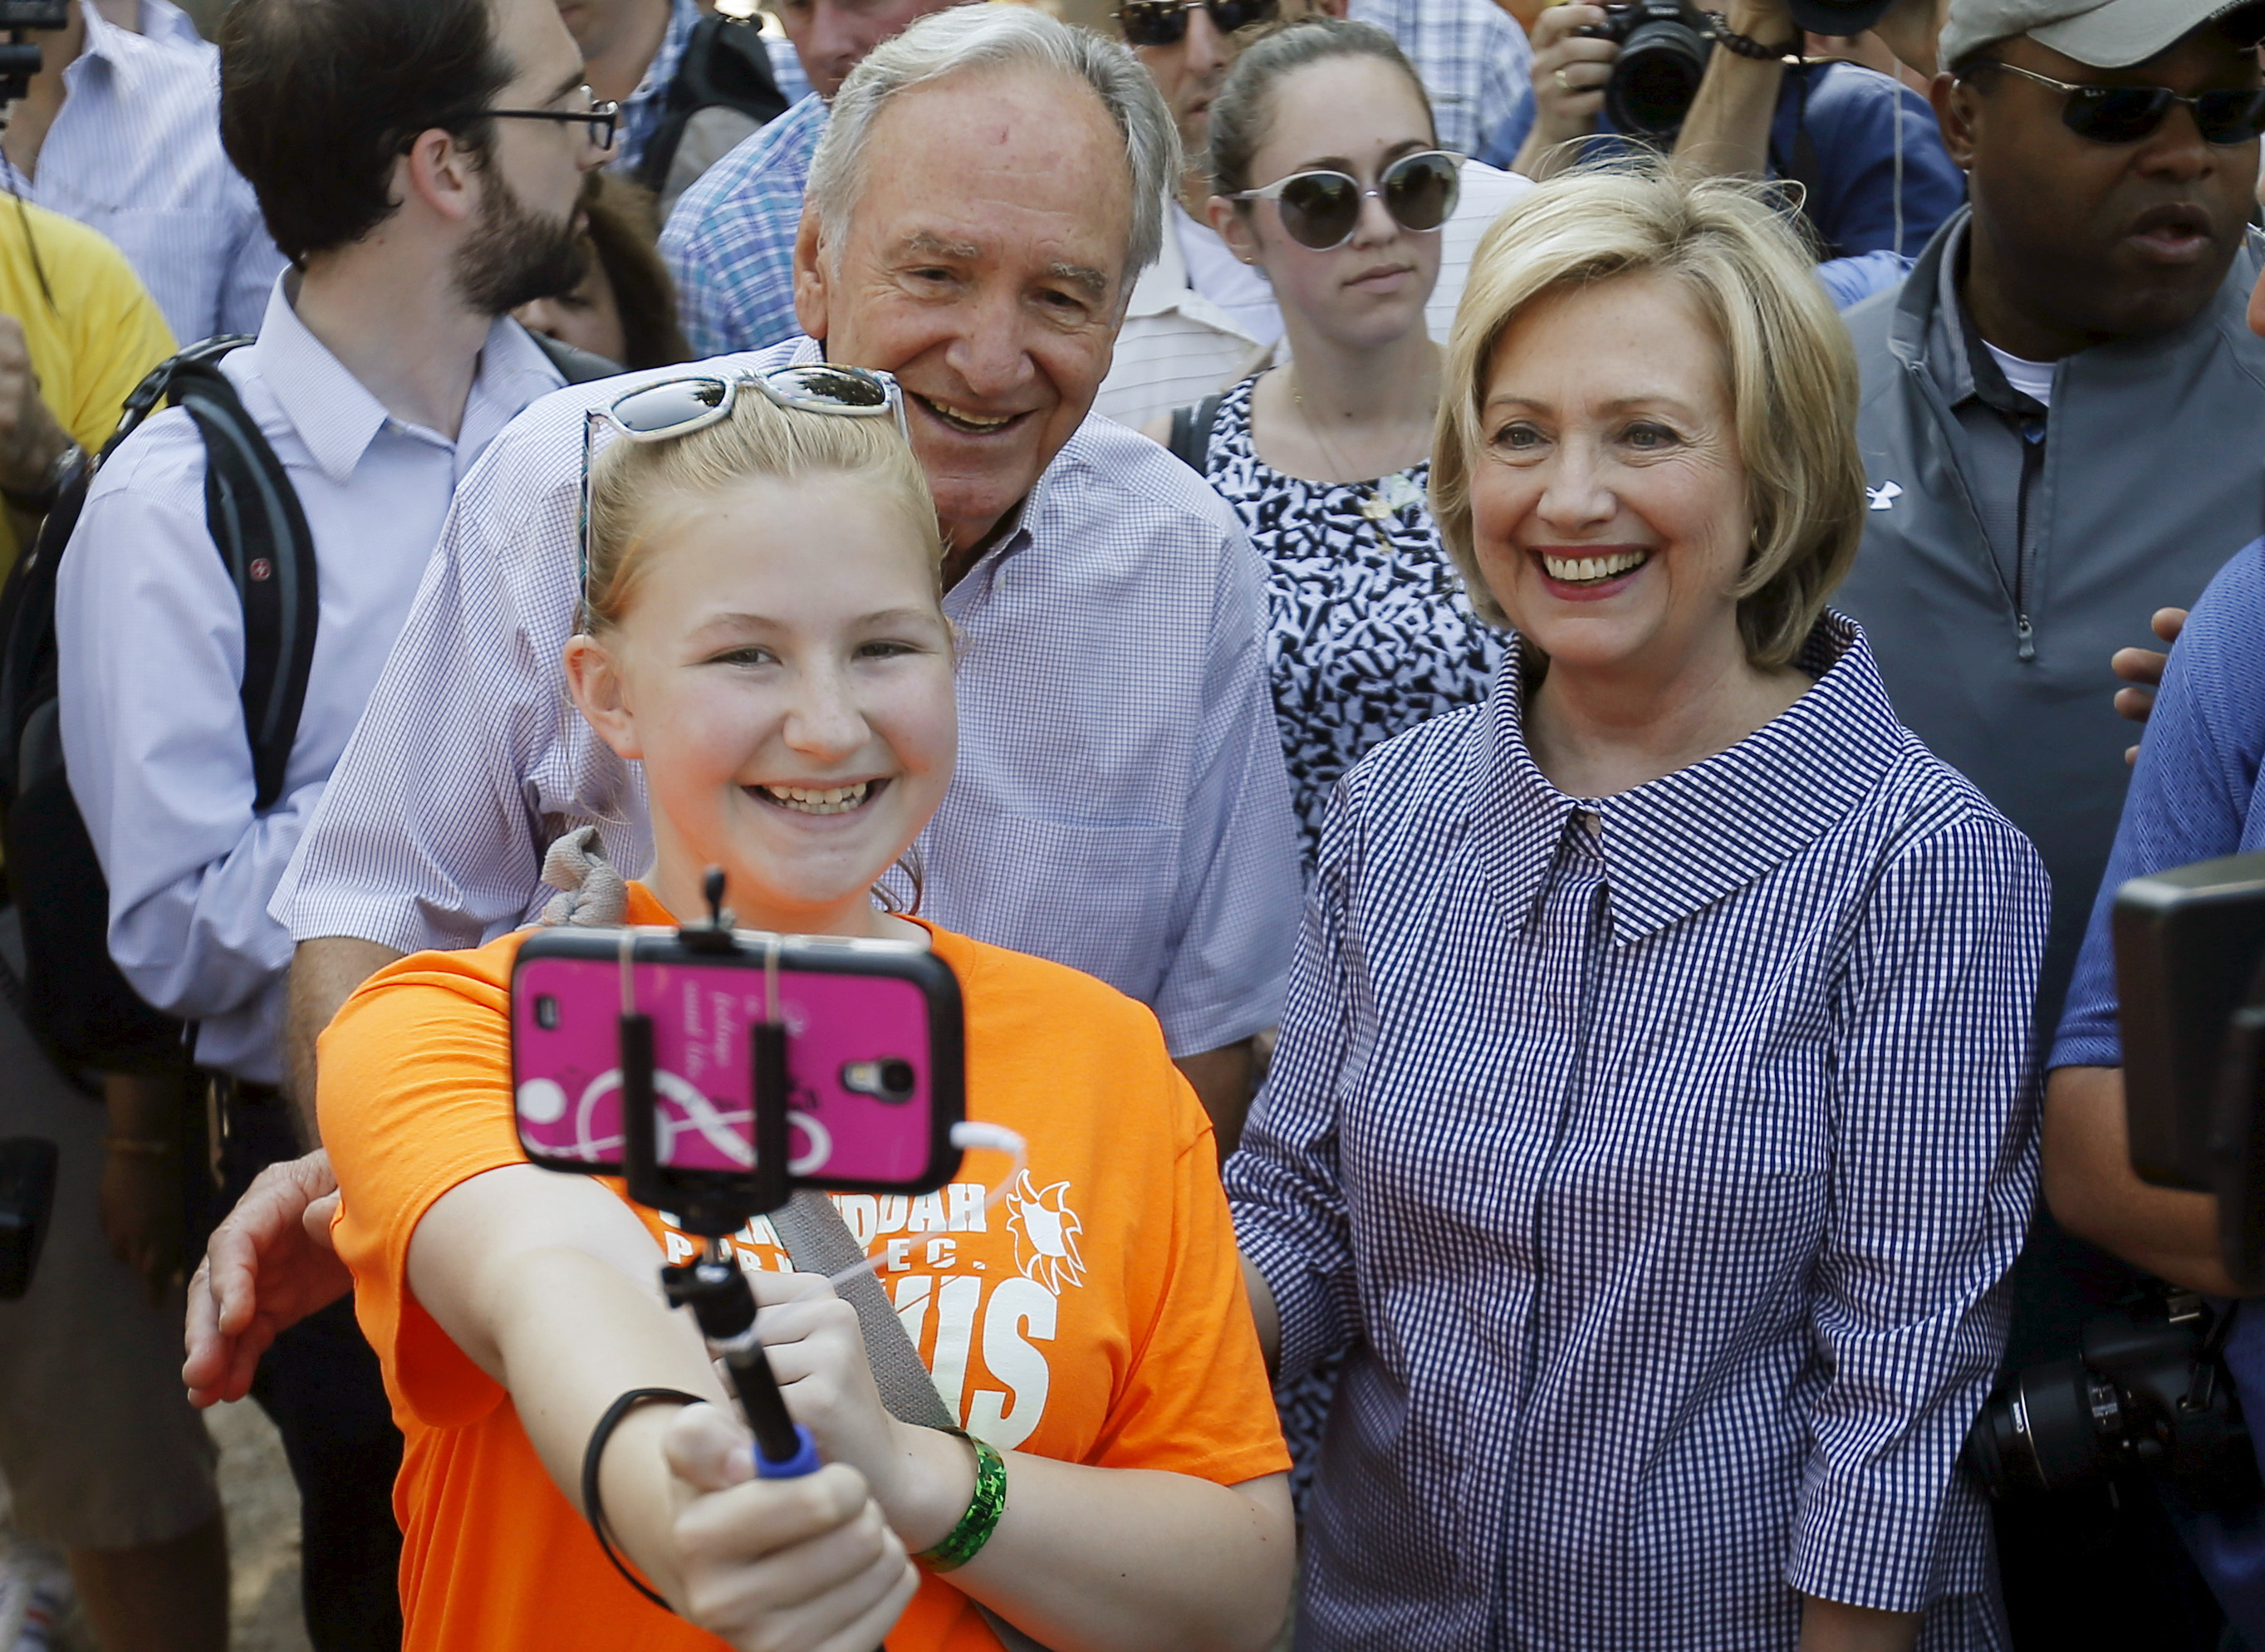 U.S. Democratic presidential candidate Hillary Clinton and former Senator Tom Harkin (C) pose for a photo with an attendee at the Iowa State Fair in Des Moines, Iowa, United States, August 15, 2015.  REUTERS/Jim Young   - RTX1ODVD